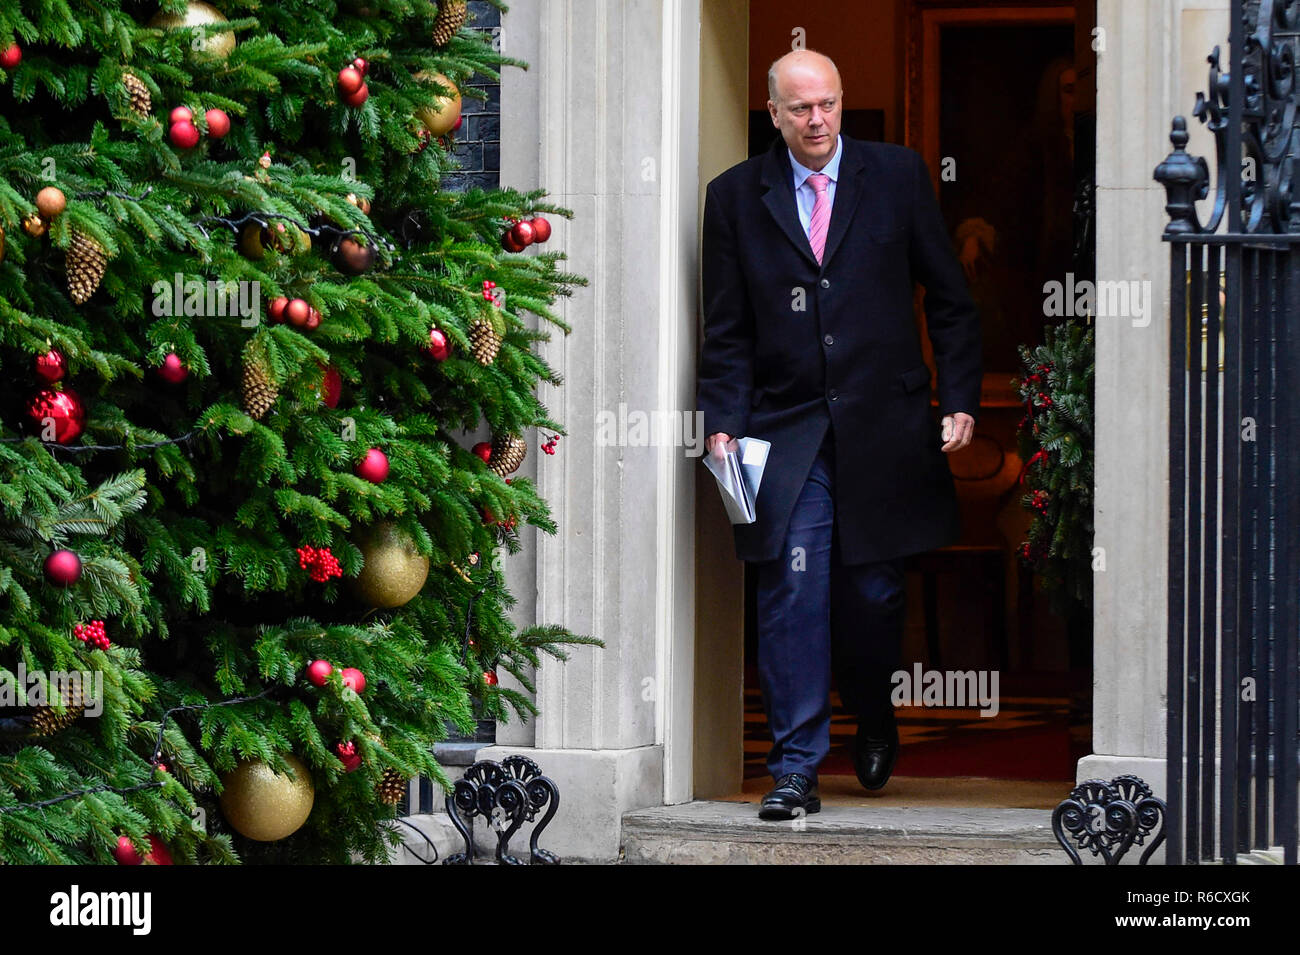 London, UK. 4th Dec, 2018. British Transport Secretary Chris Grayling leaves 10 Downing Street after a cabinet meeting in London, Britain on Dec. 4, 2018. British MPs on Tuesday voted by 311 to 293 to find ministers in contempt of parliament over their failure to publish the full legal advice on the Brexit deal. Credit: Stephen Chung/Xinhua/Alamy Live News - Stock Image